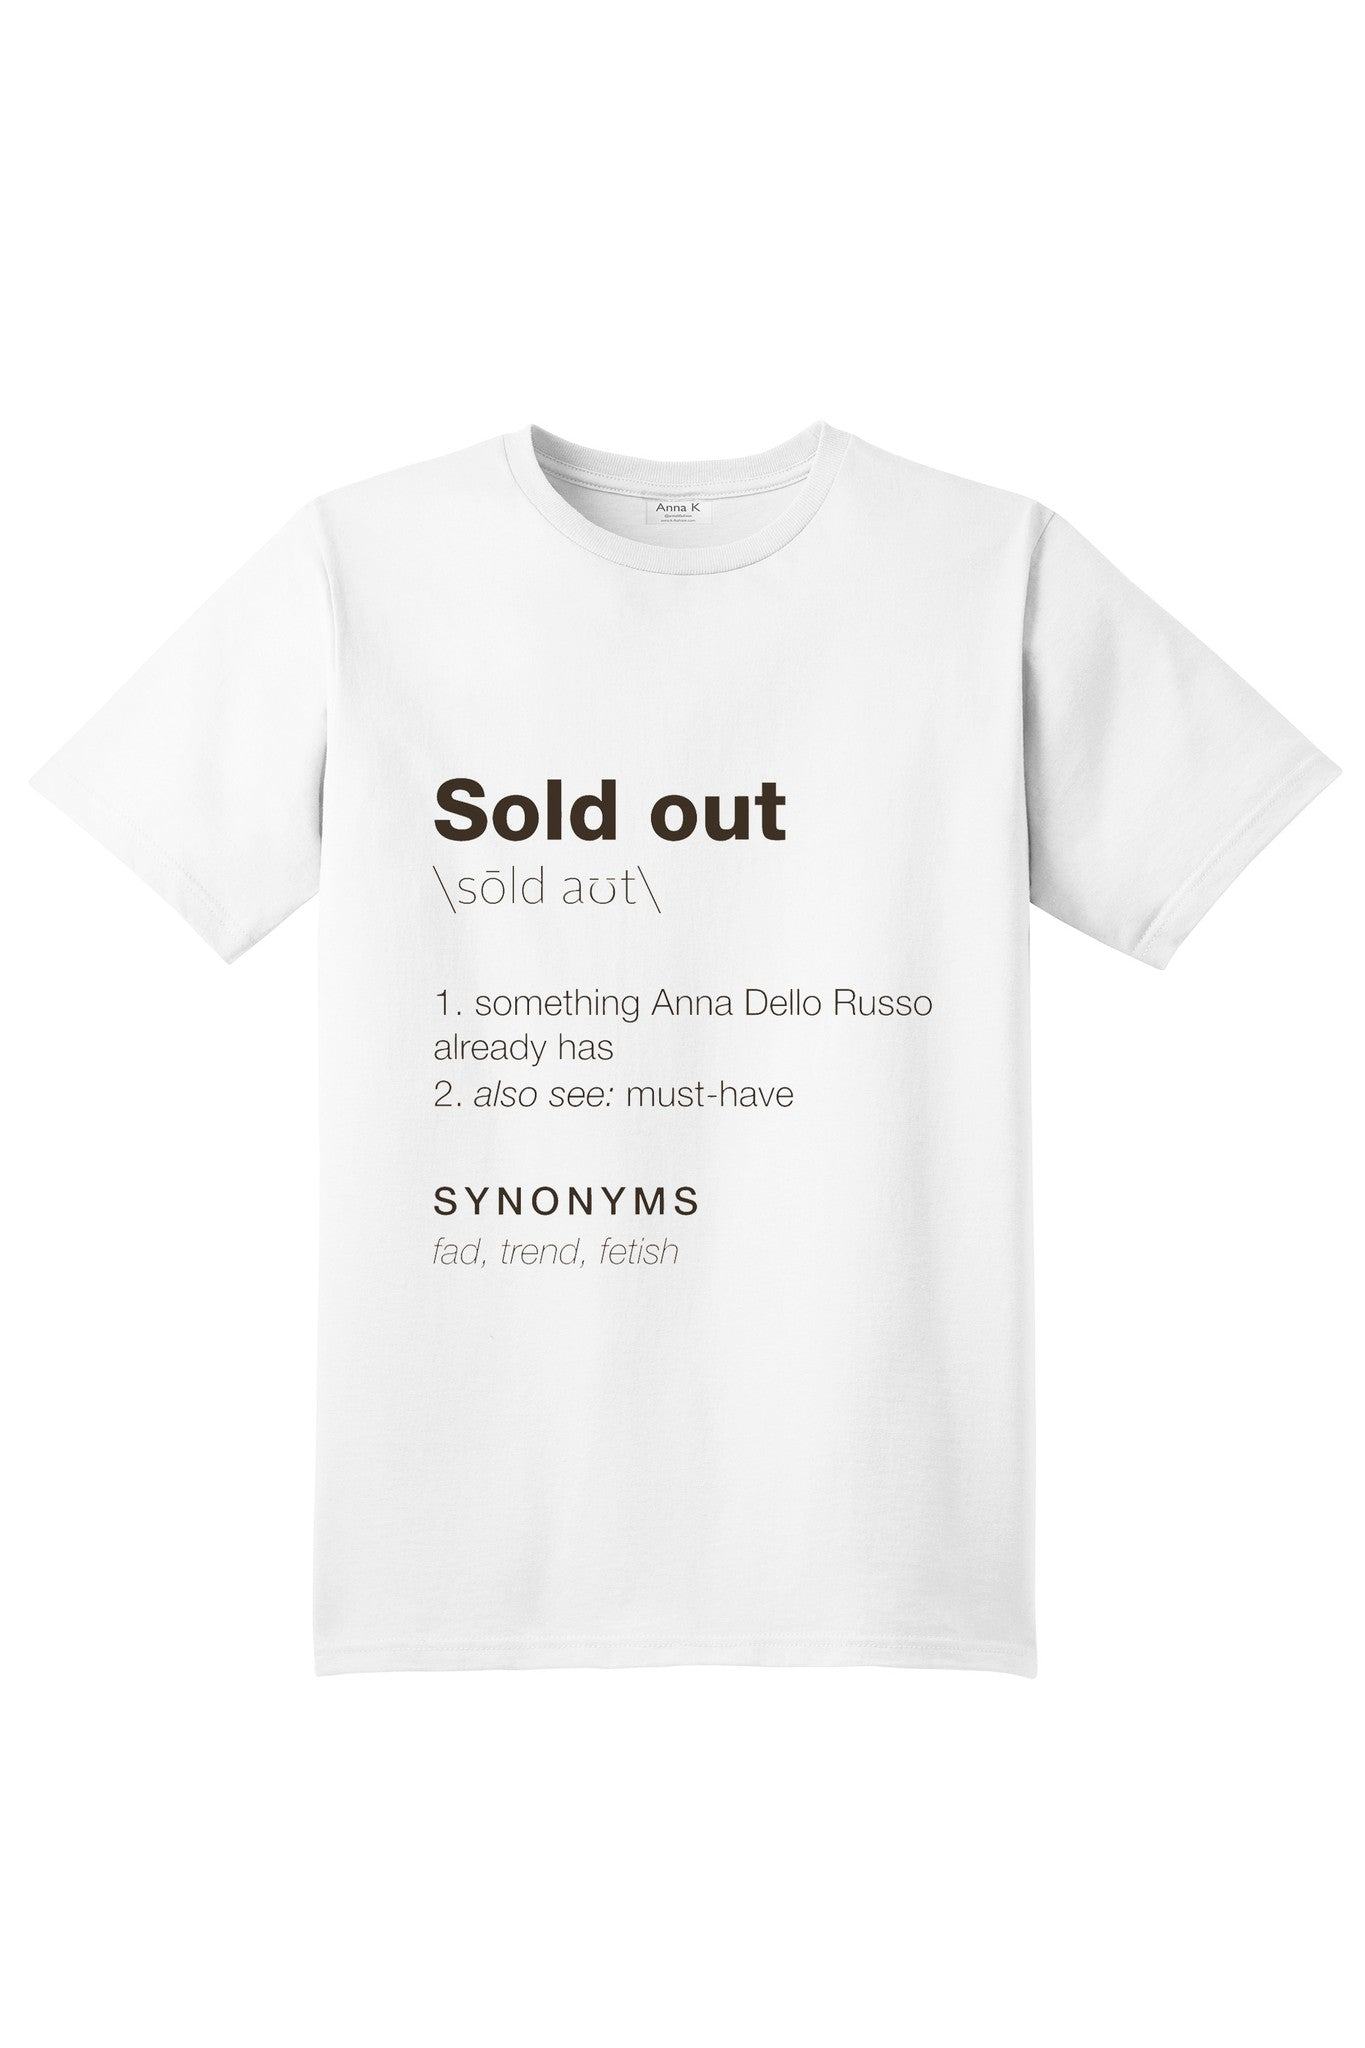 Sold out - Anna K